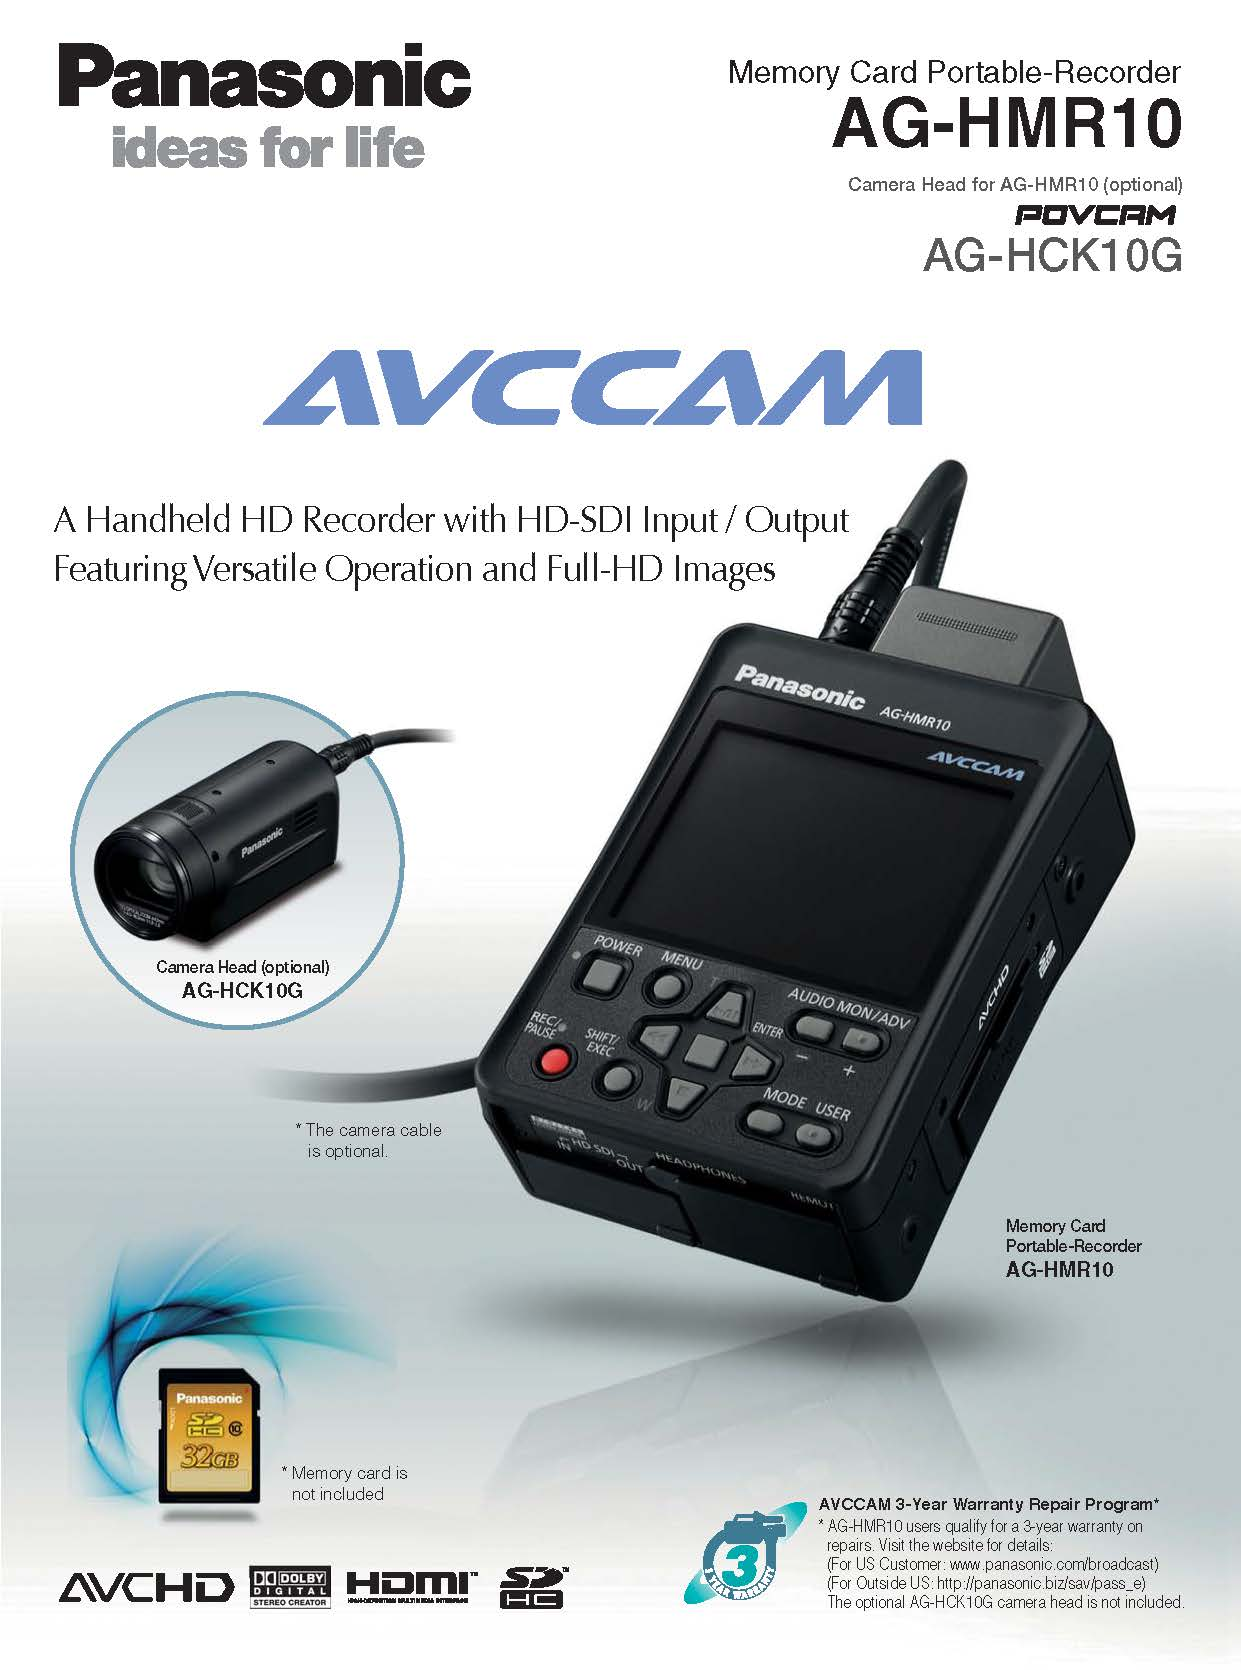 AVCAM Corporation Ltd, Ahmedabad - fundoodata.com